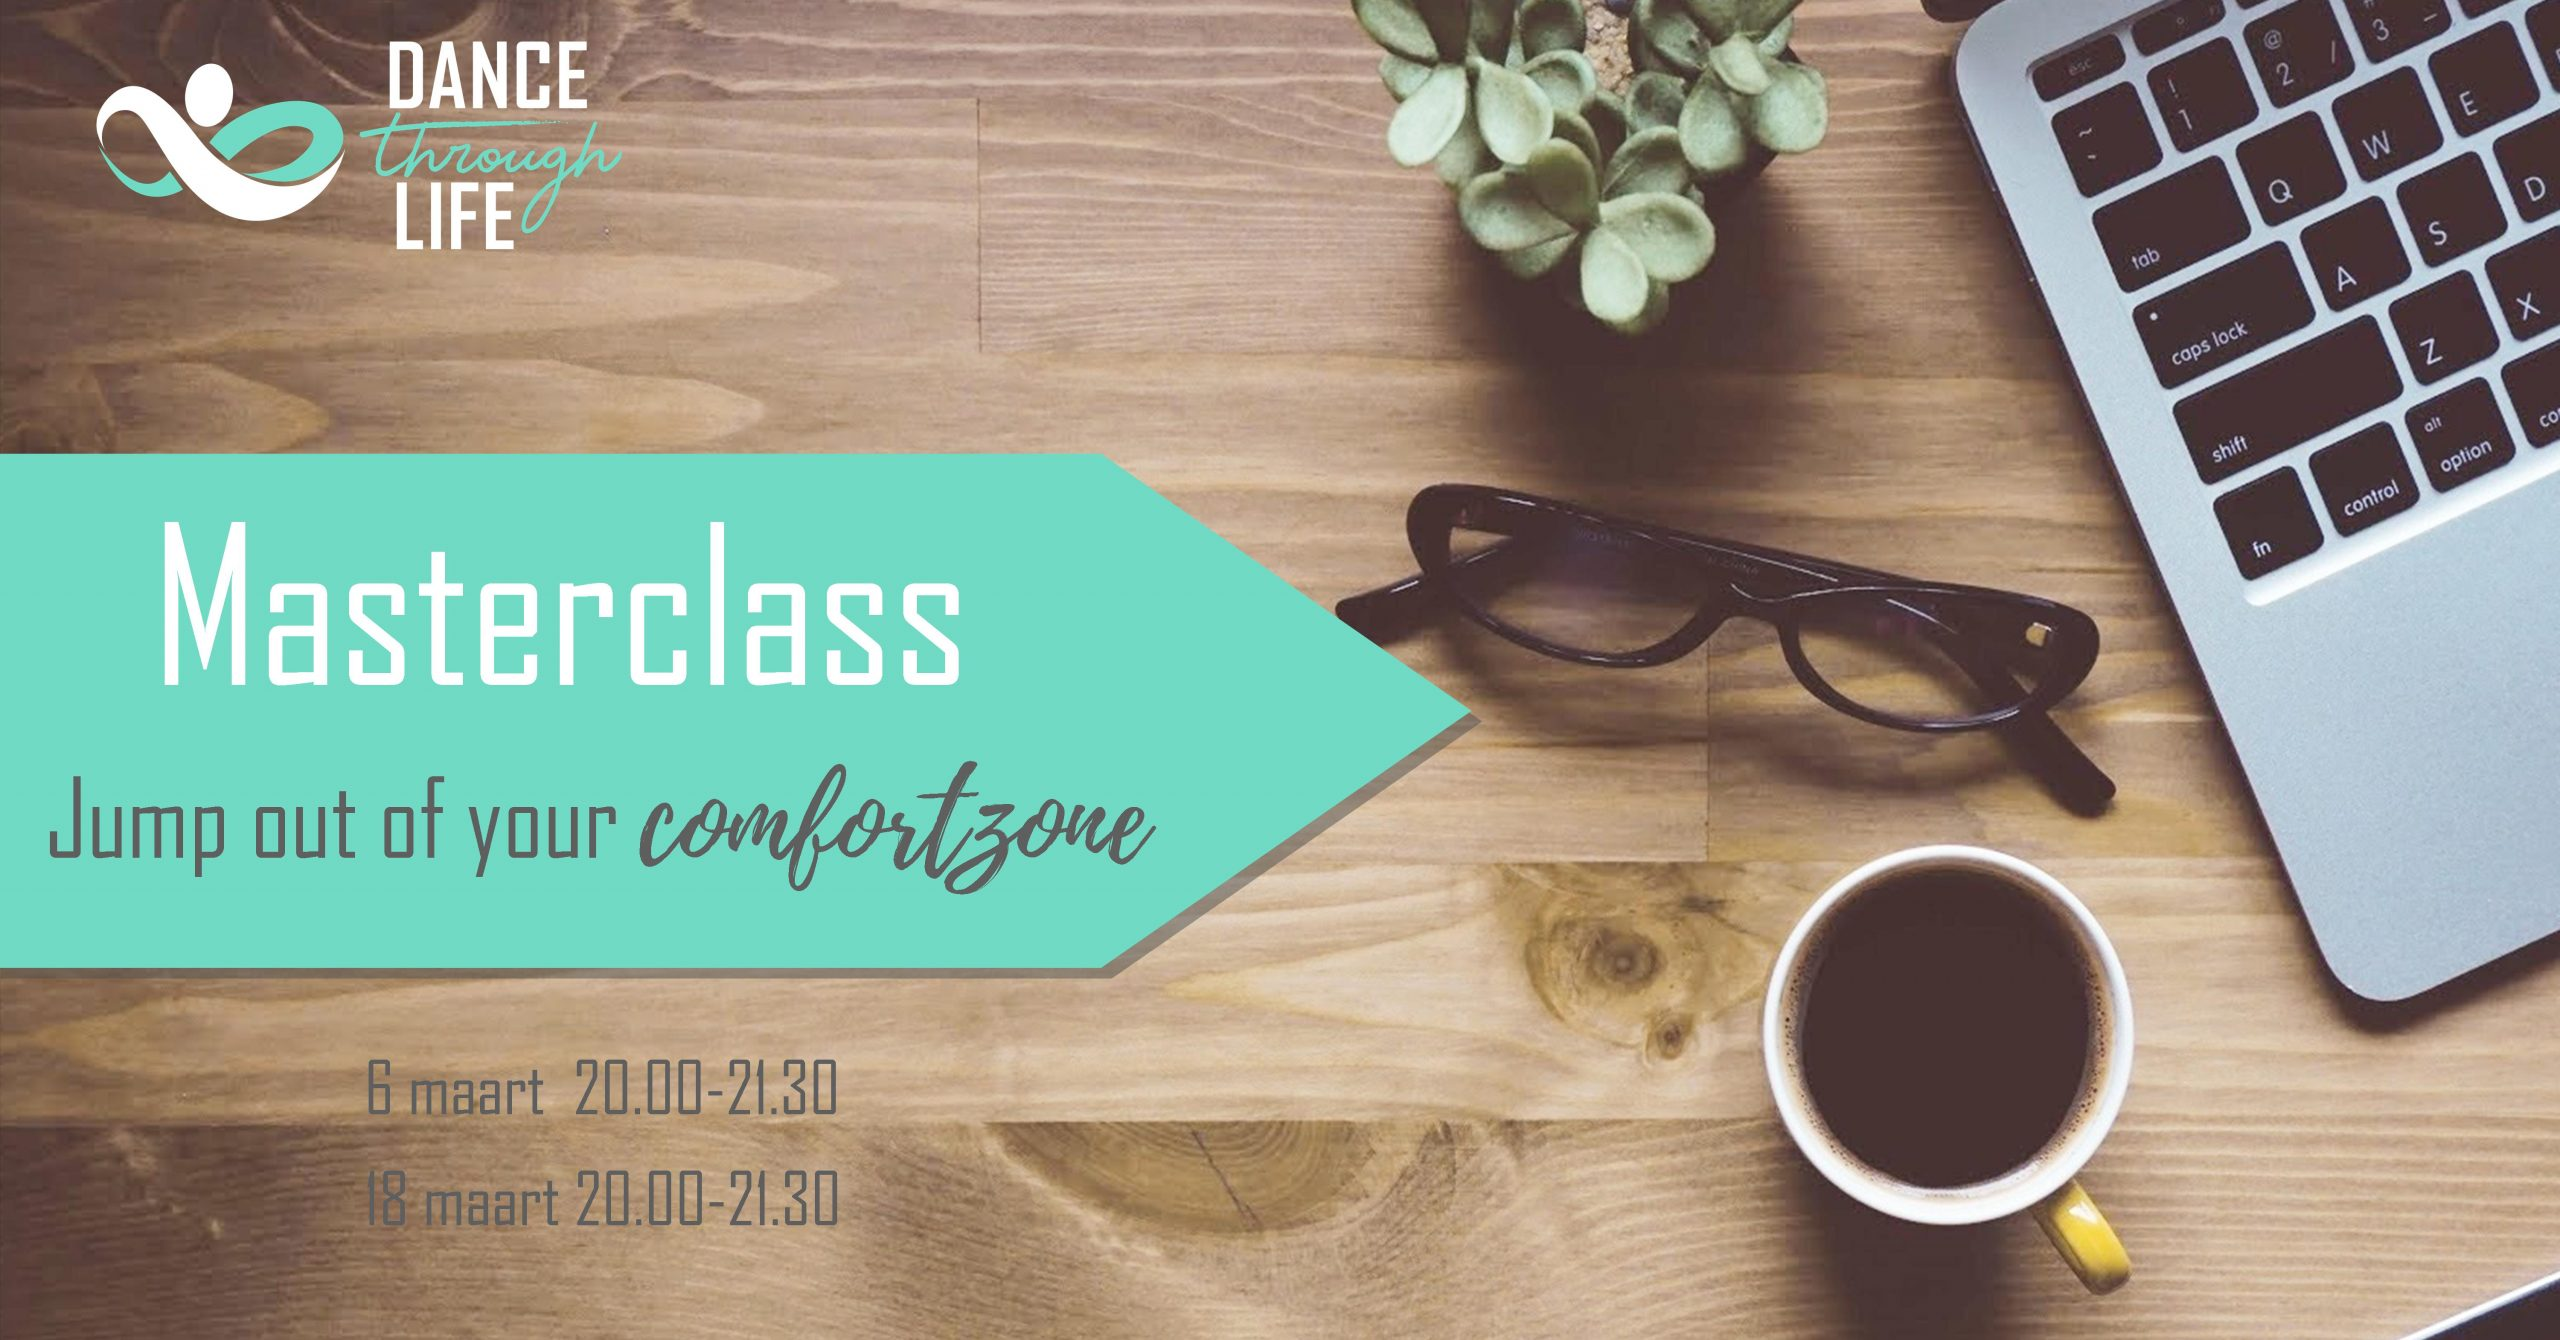 Masterclass out of your comfortzone - Dance Through Life